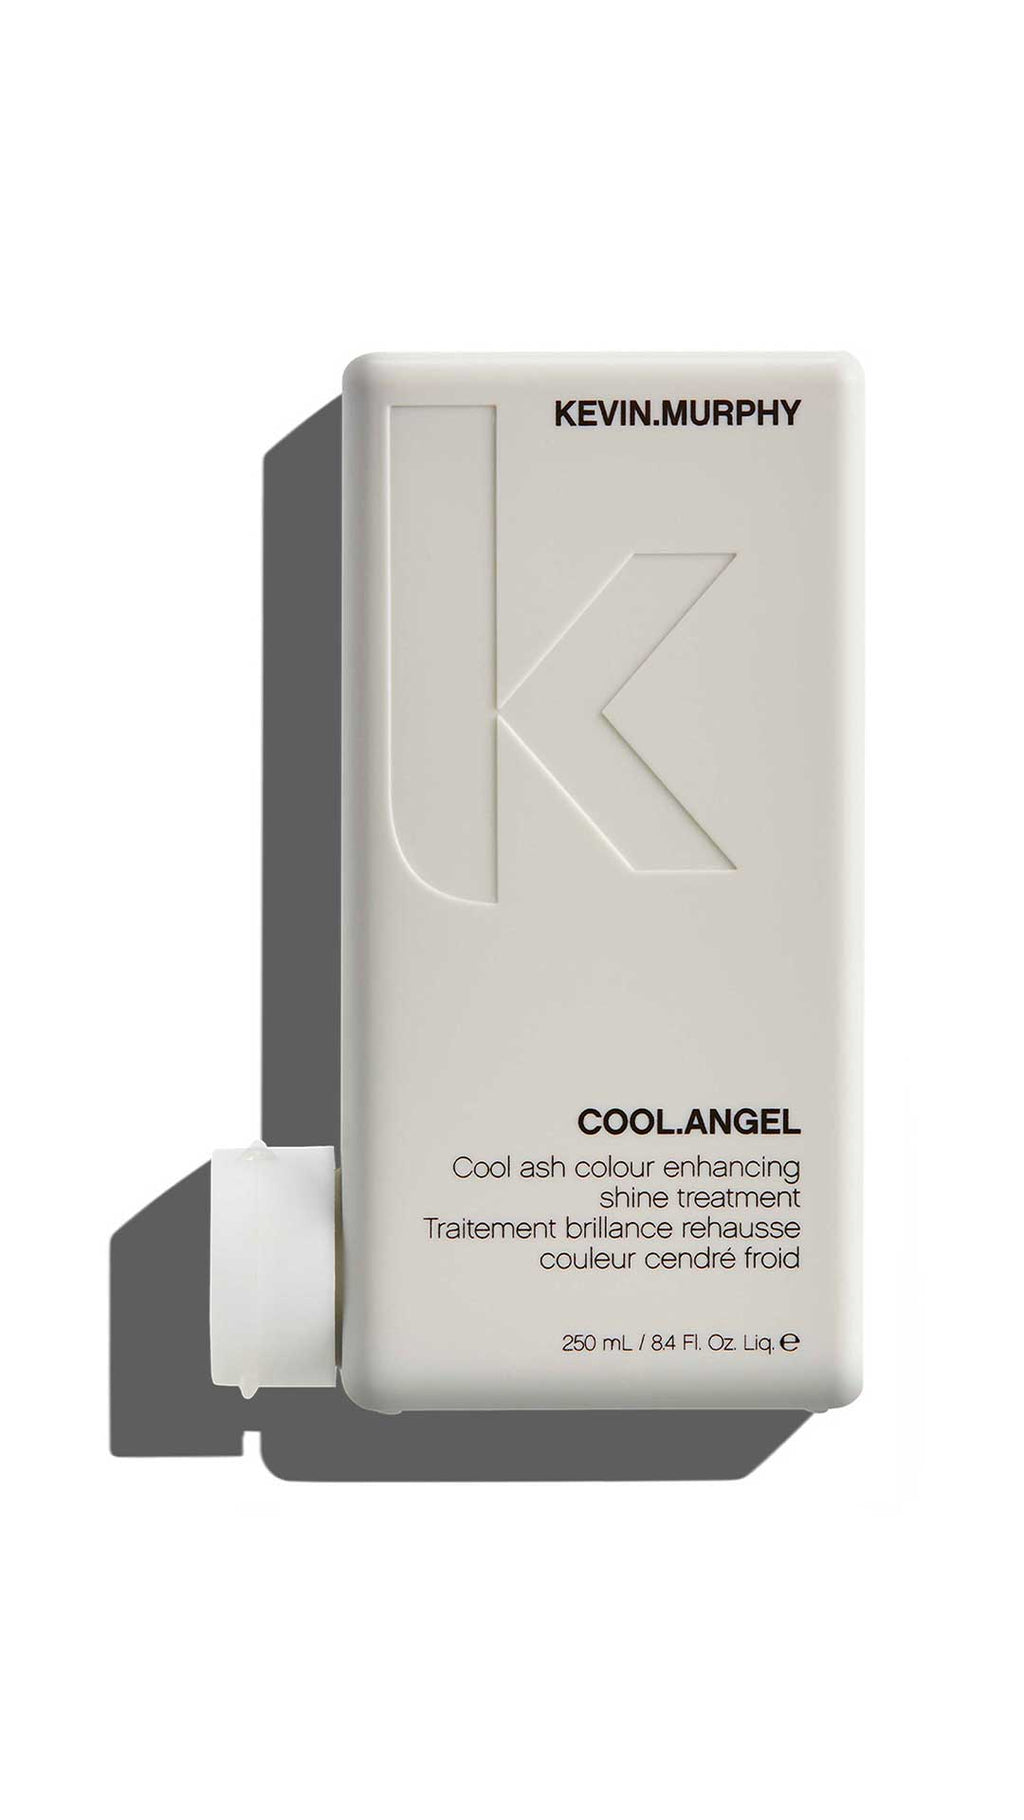 COOL ANGEL - KEVIN MURPHY